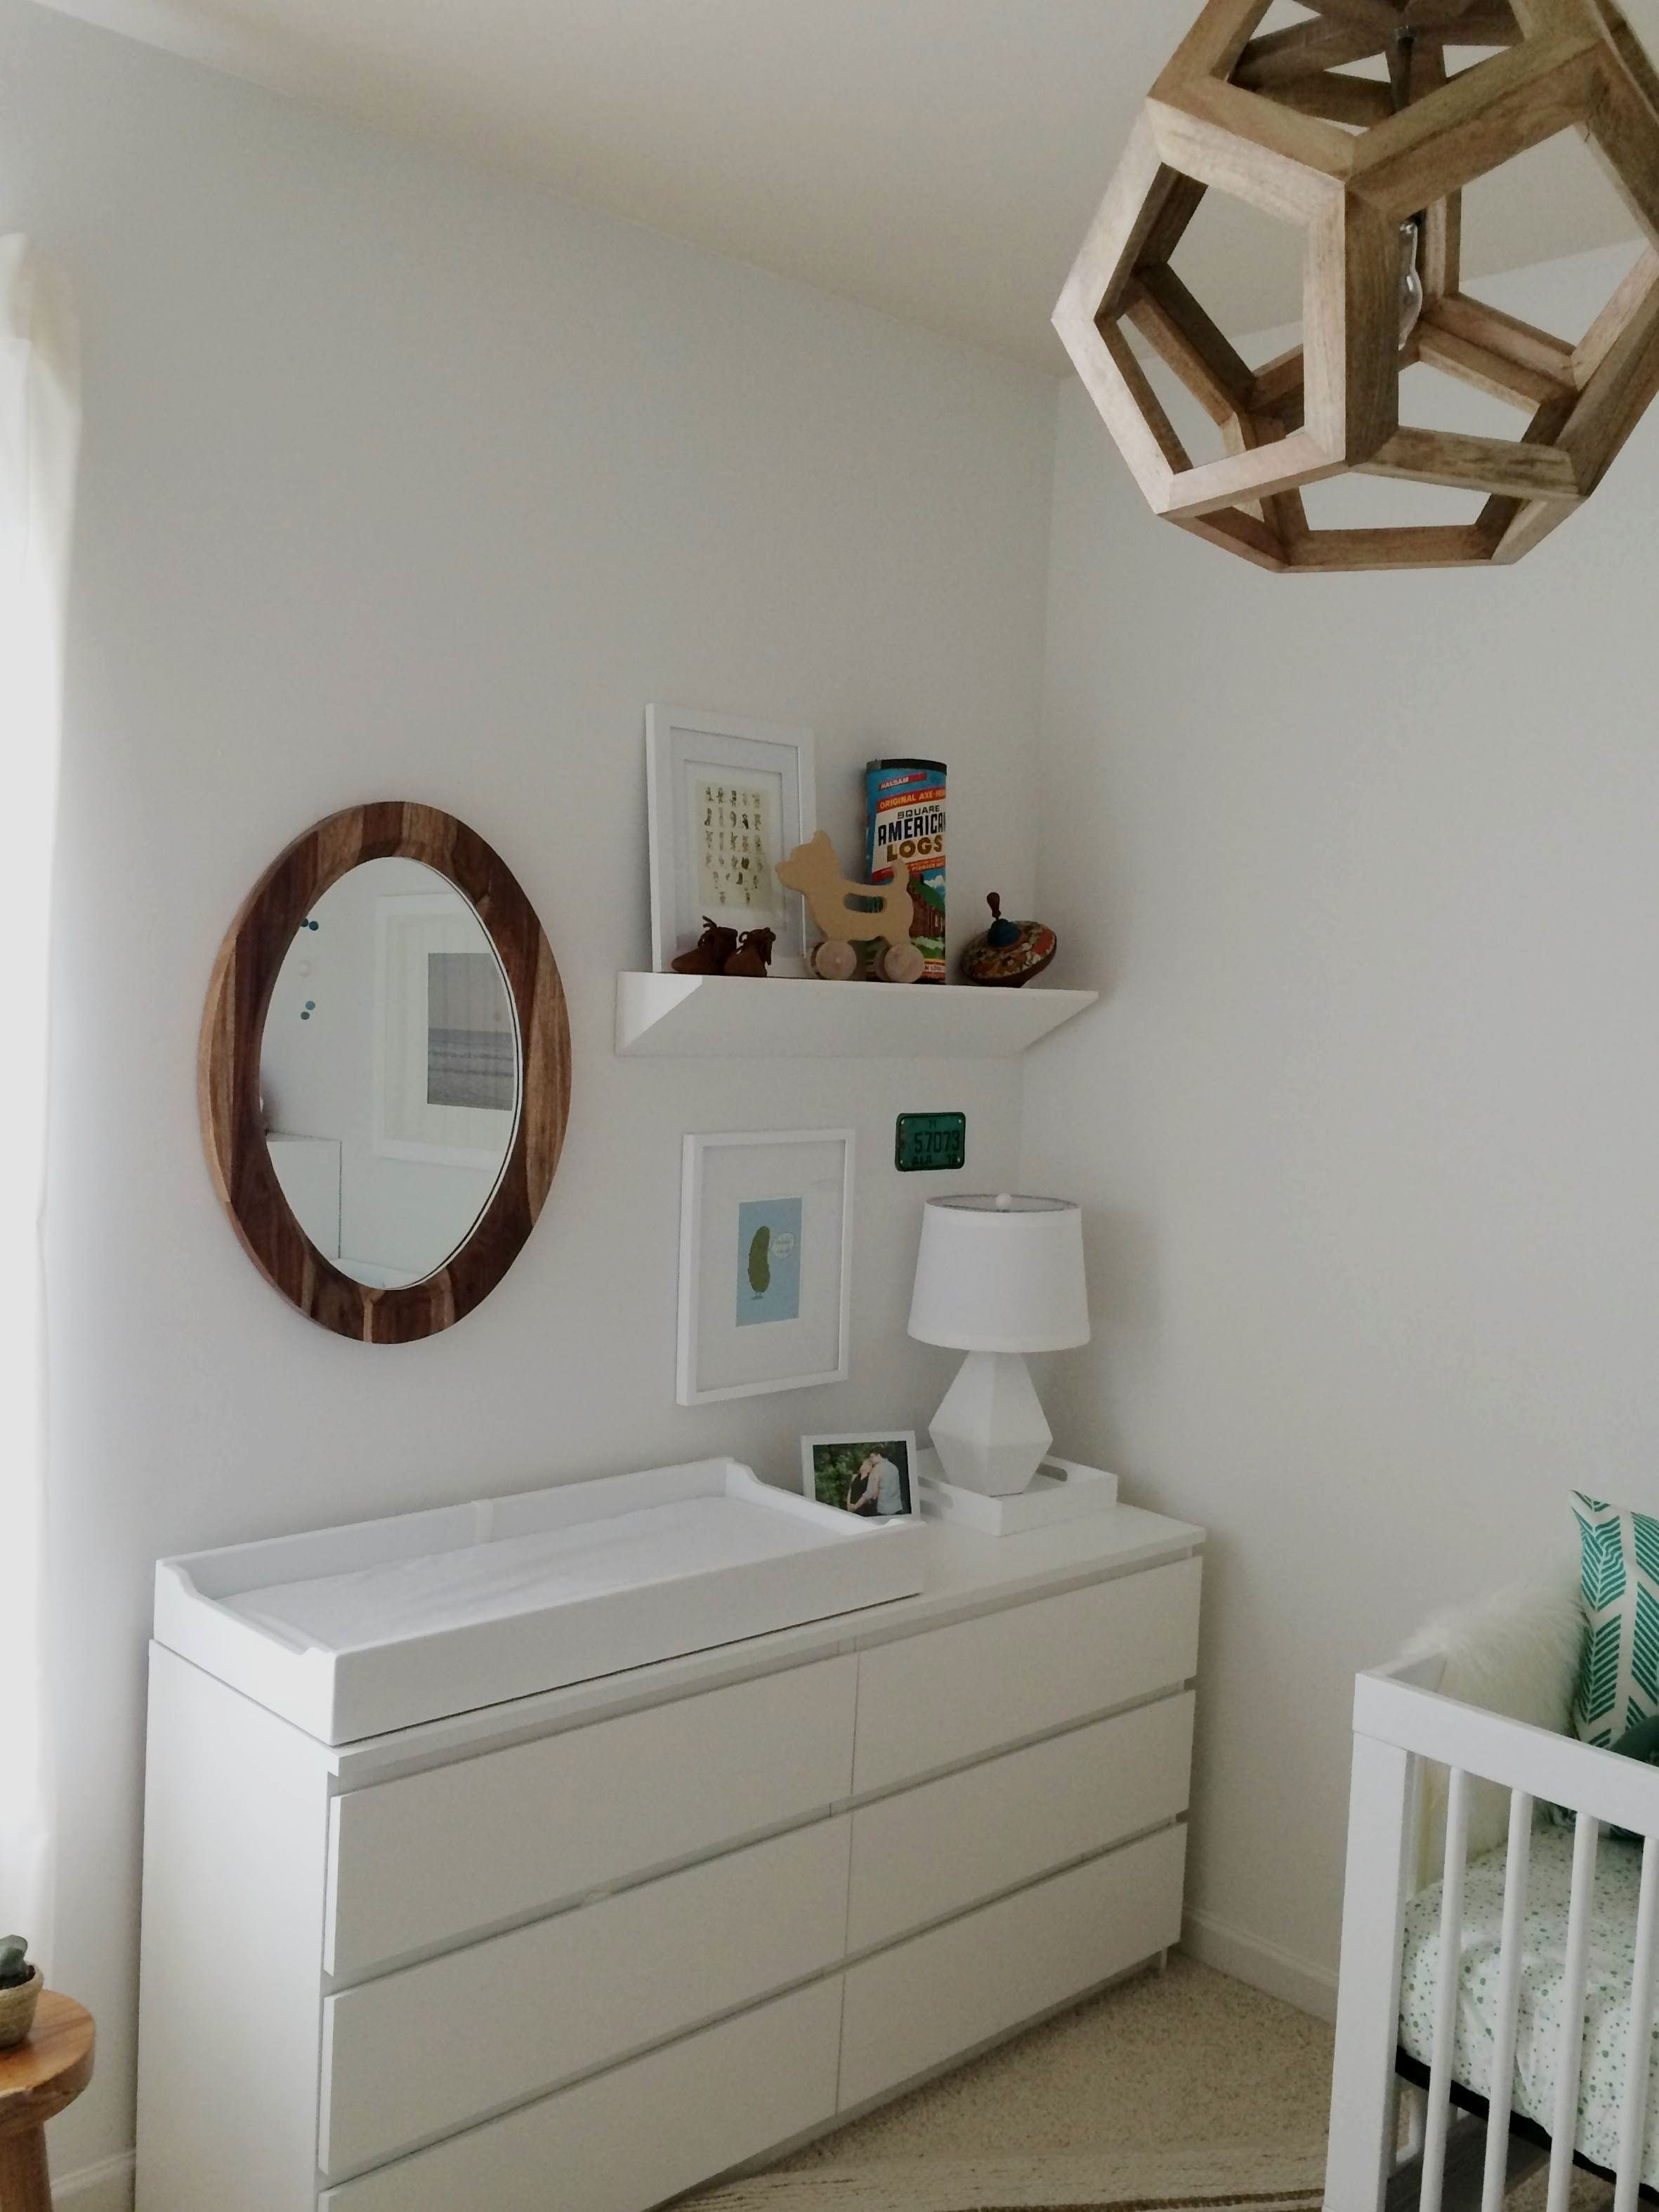 Malm Ladekast Als Commode.Pin By Armenodincov On Nursey Baby Bedroom Ikea Nursery Malm